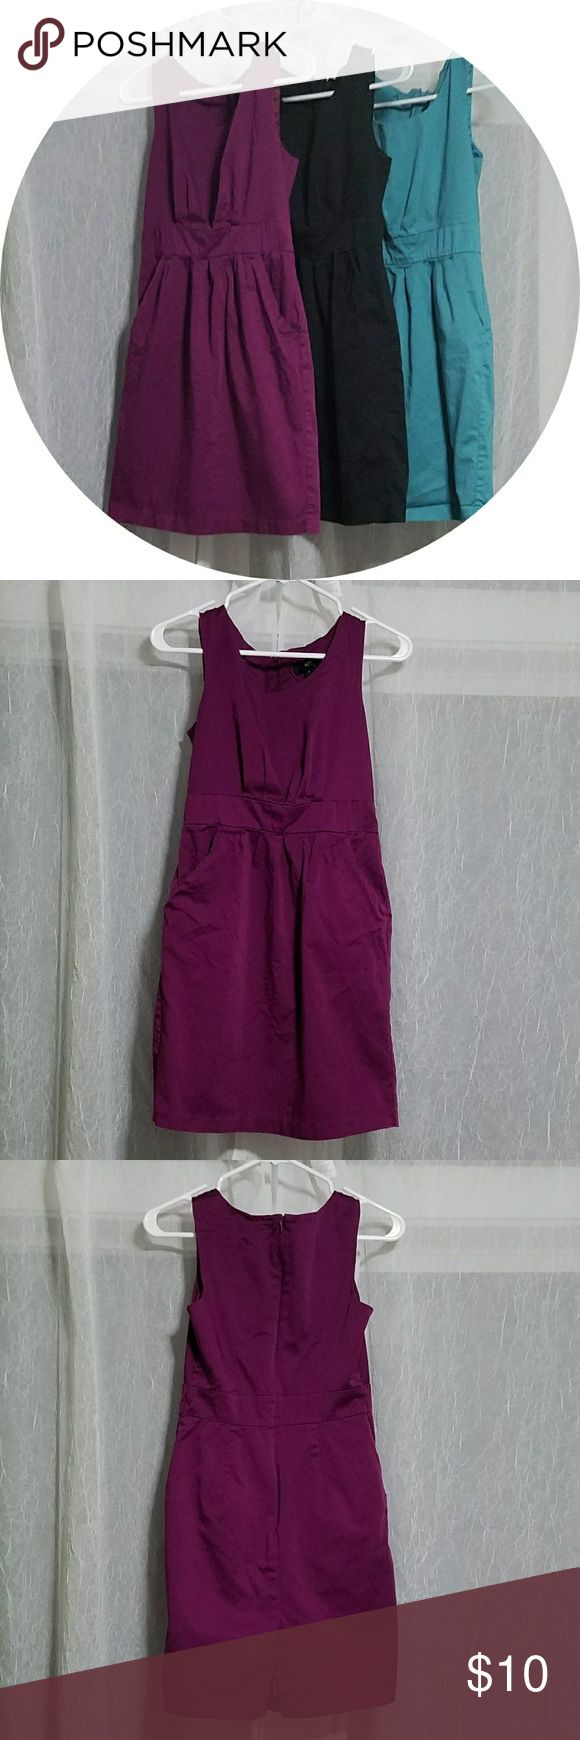 Purple Mossimo dress Purple Mossimo dress, size 2. This is a great, versatile dress that would be suitable for work or going out. It is zip-up in the back, has pockets, and an interior lining.  Interested in the other colors too? Check them out in my closet, and bundle to save! I bought these off Poshmark being hopeful they'd fit me (I wear a size 4), but they are too small for me. Mossimo Supply Co. Dresses